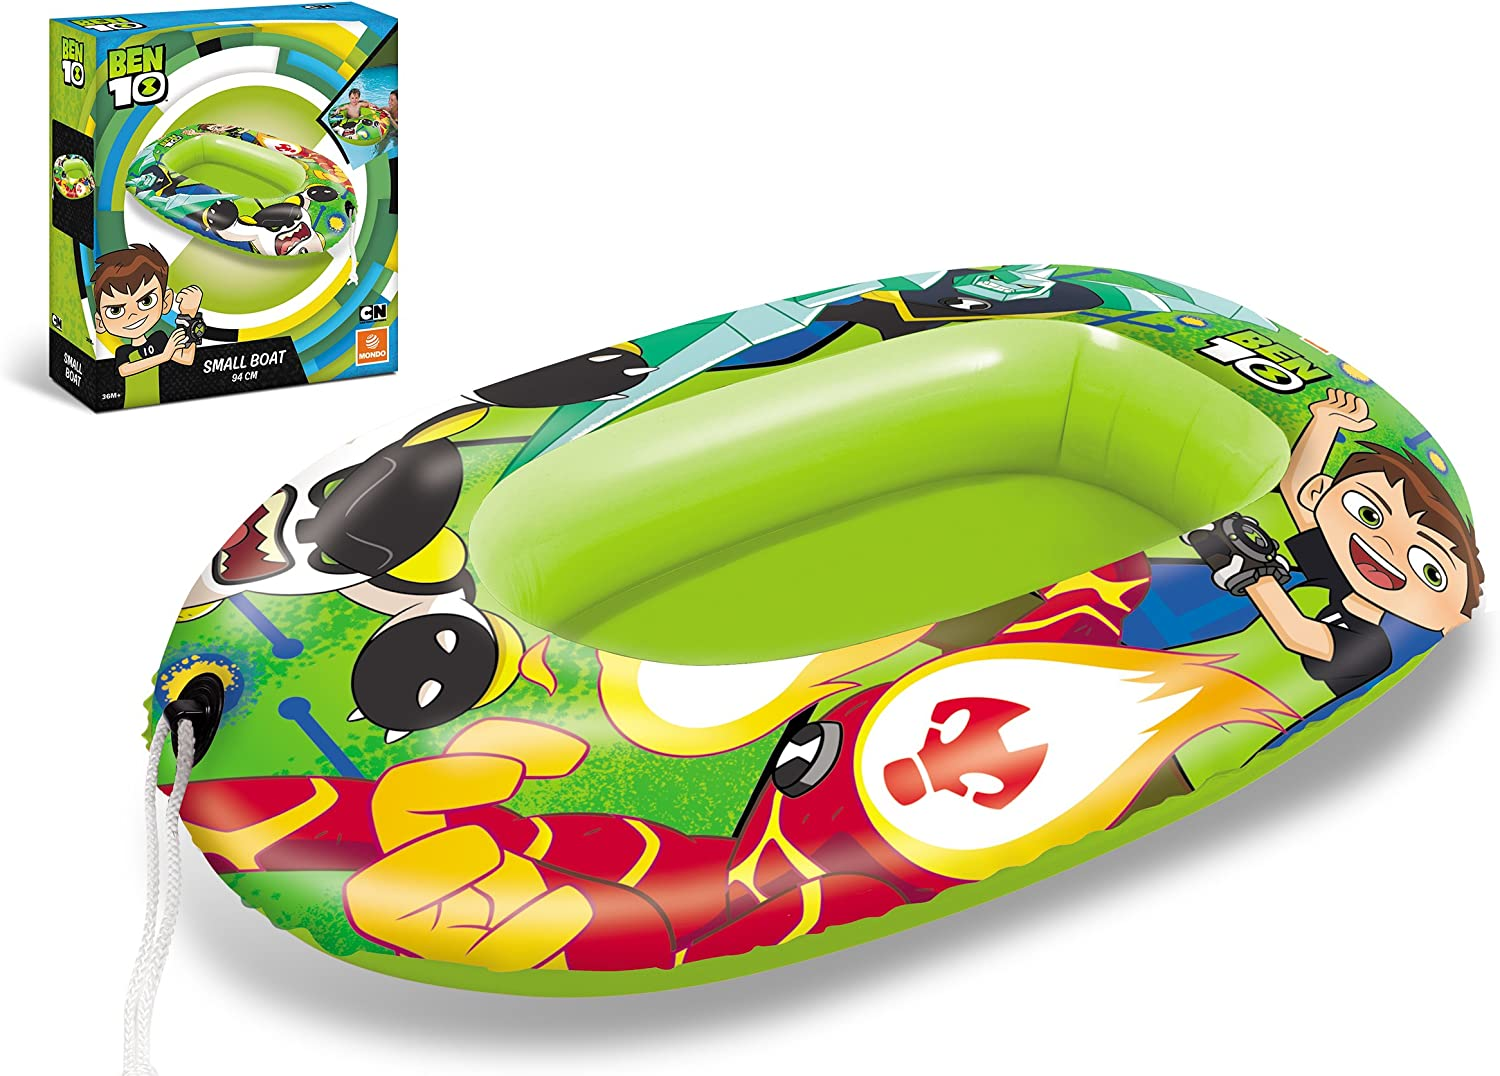 Ben 10- Barca Hinchable 94Cm para Playa O Piscina, Multicolor, 94 ...